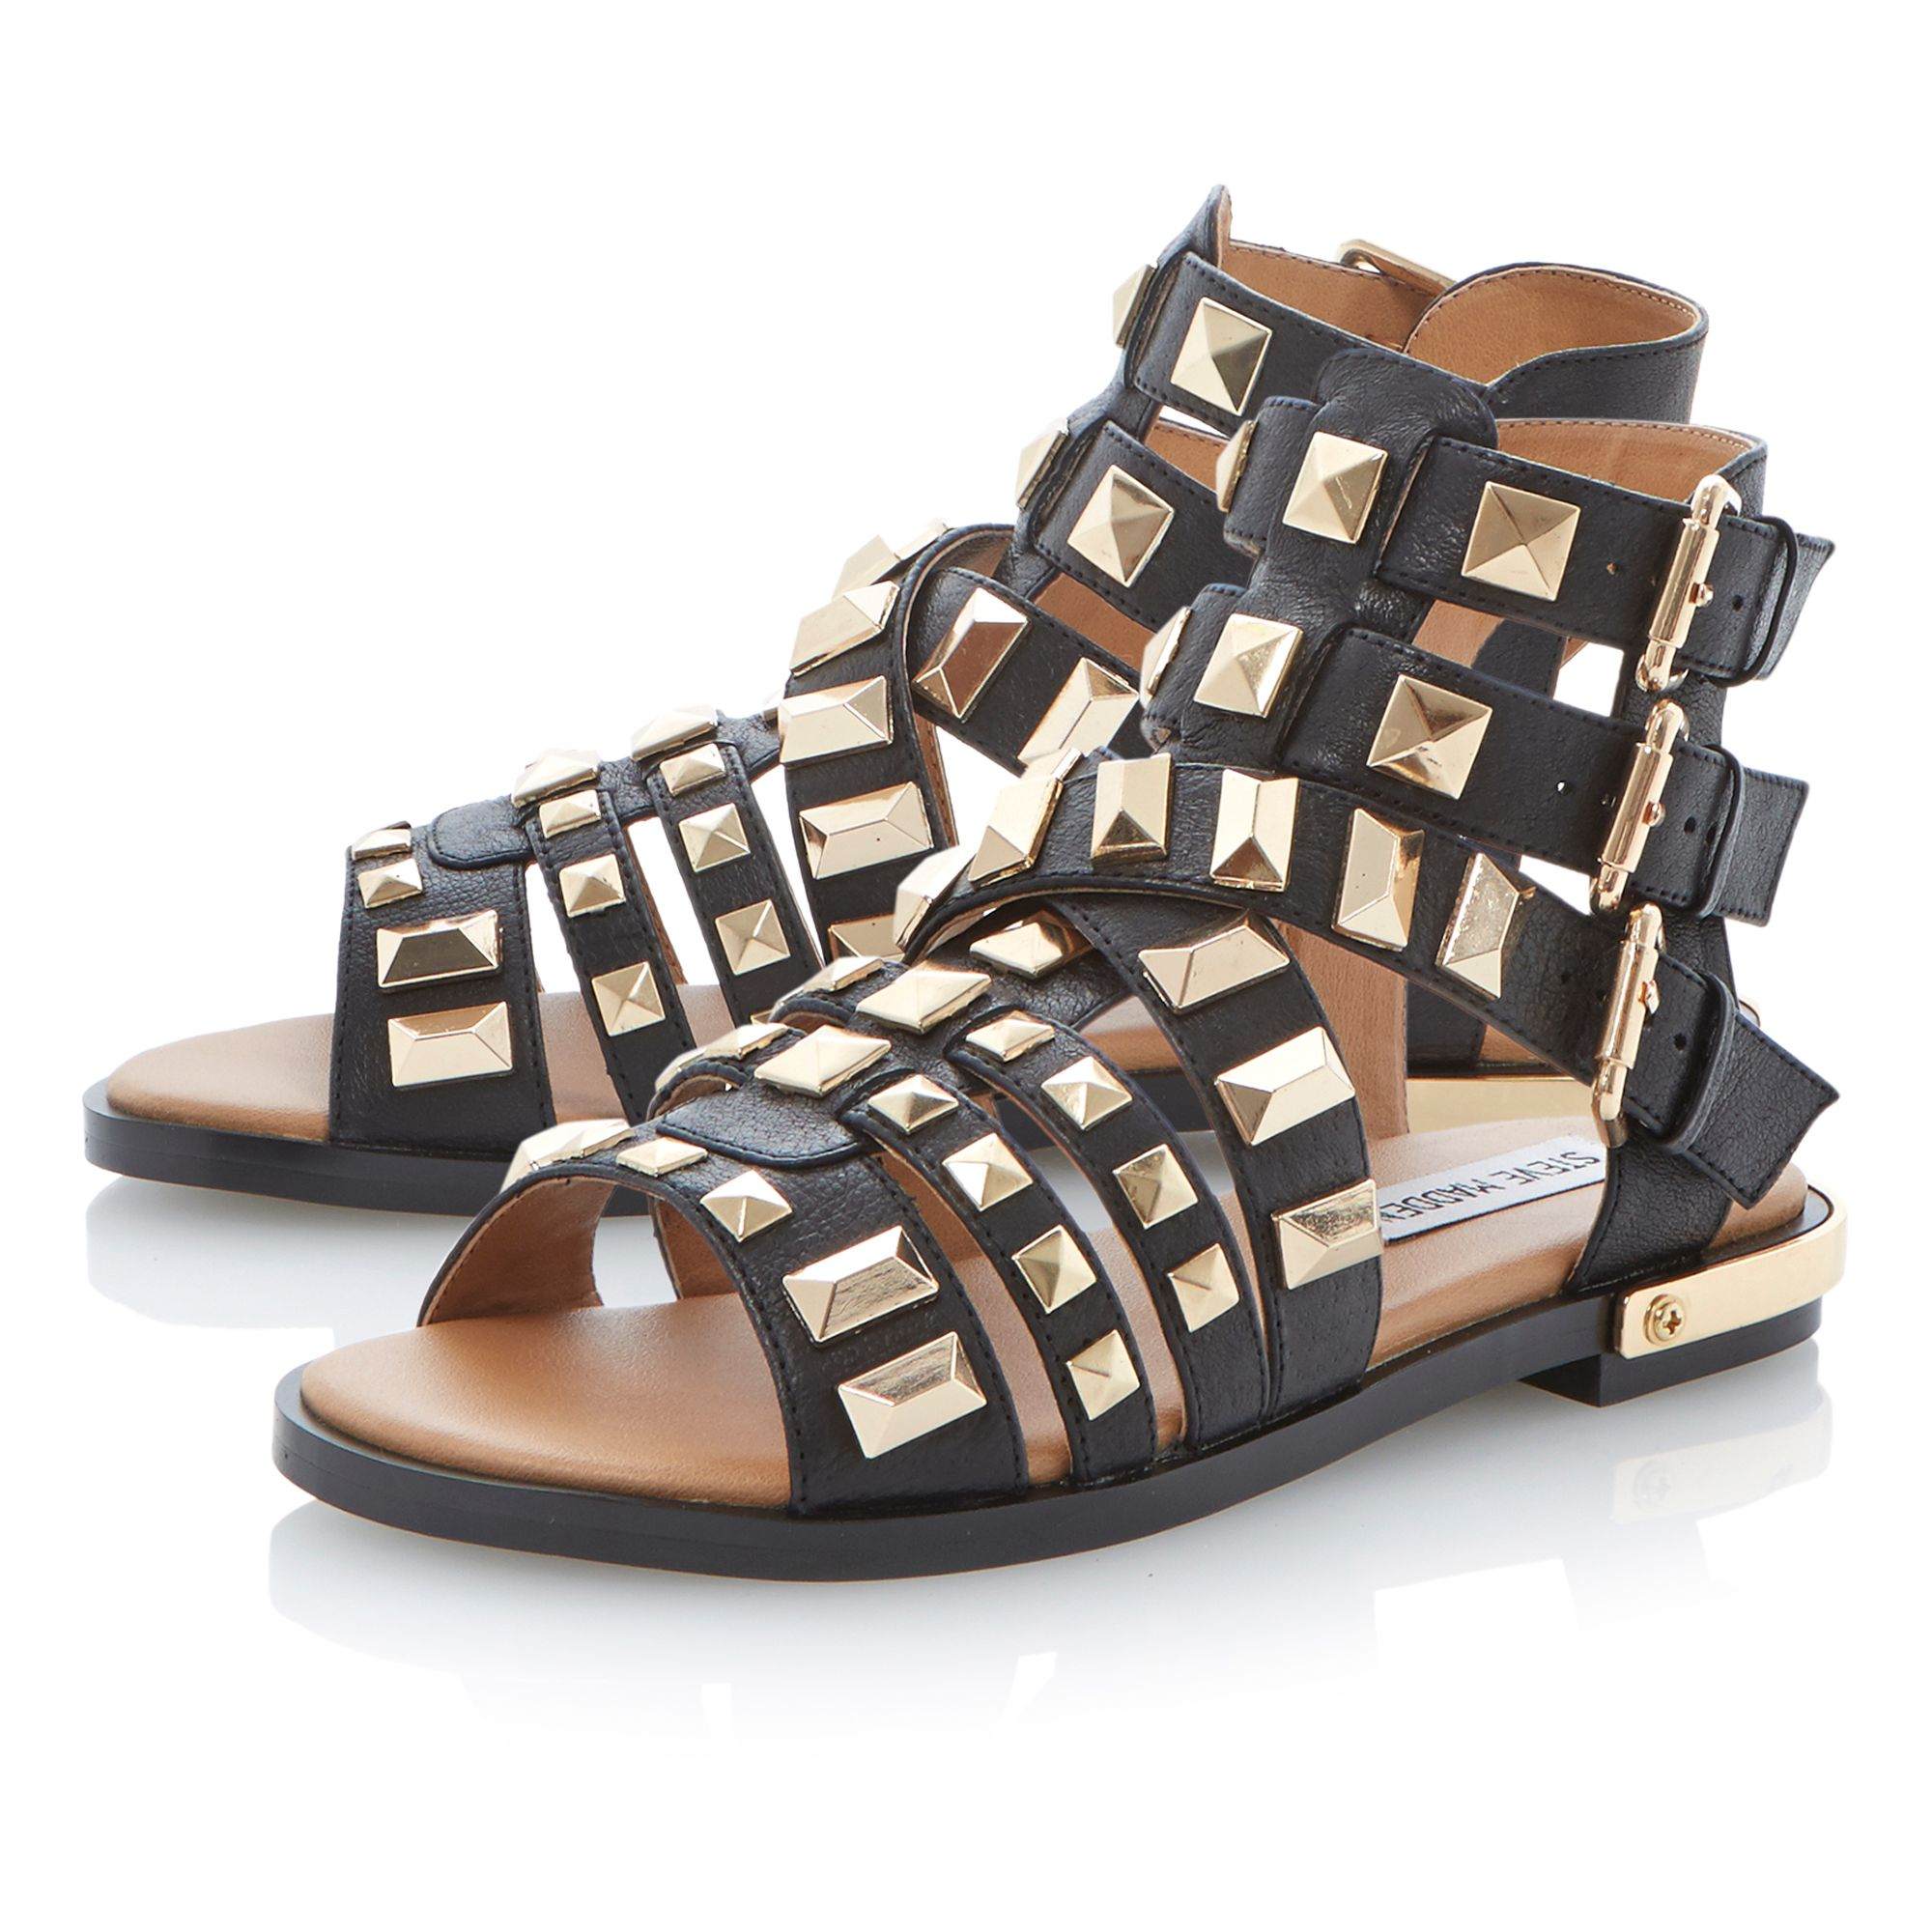 Herra leather triple buckle sandals